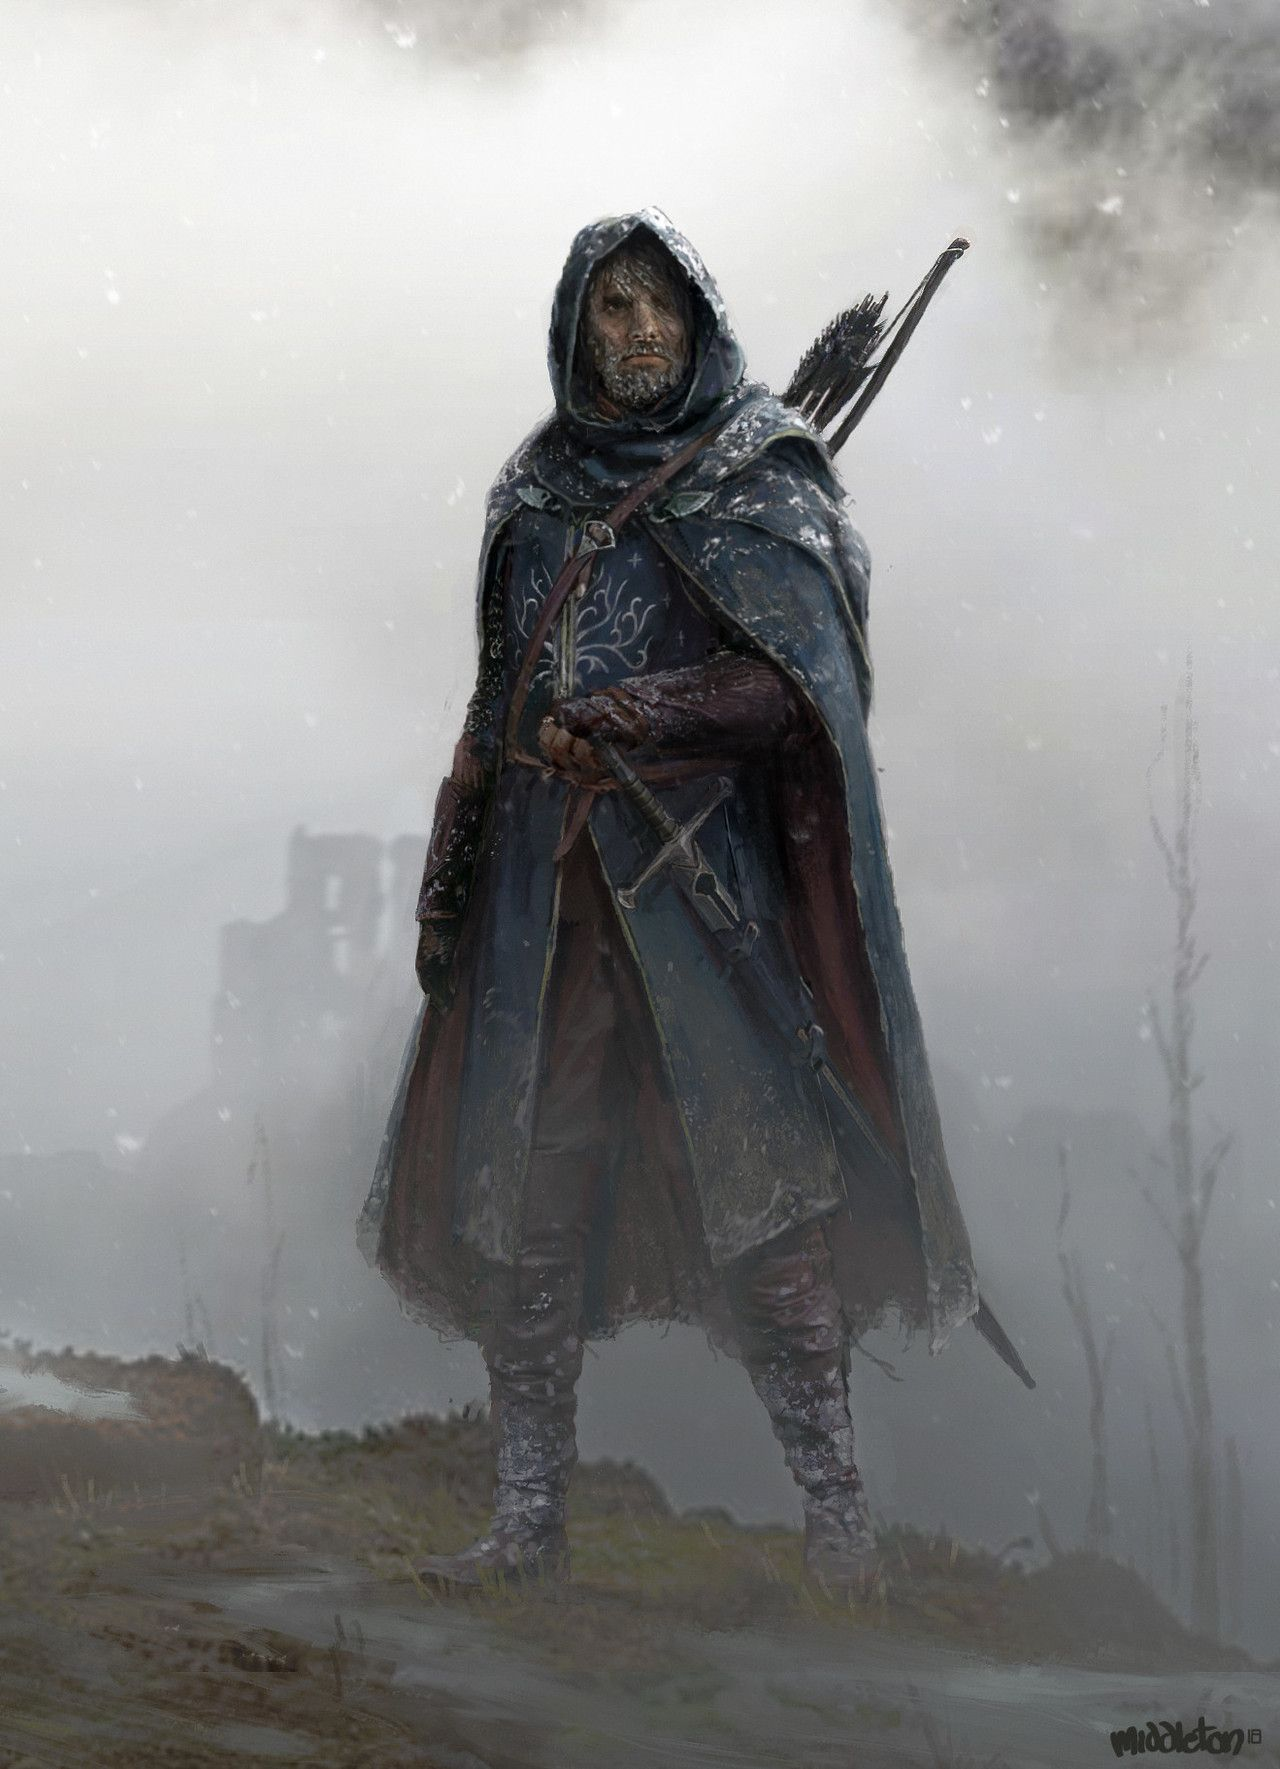 Pin By David On Symbaroum In 2018 Pinterest Jdr Guerriere And